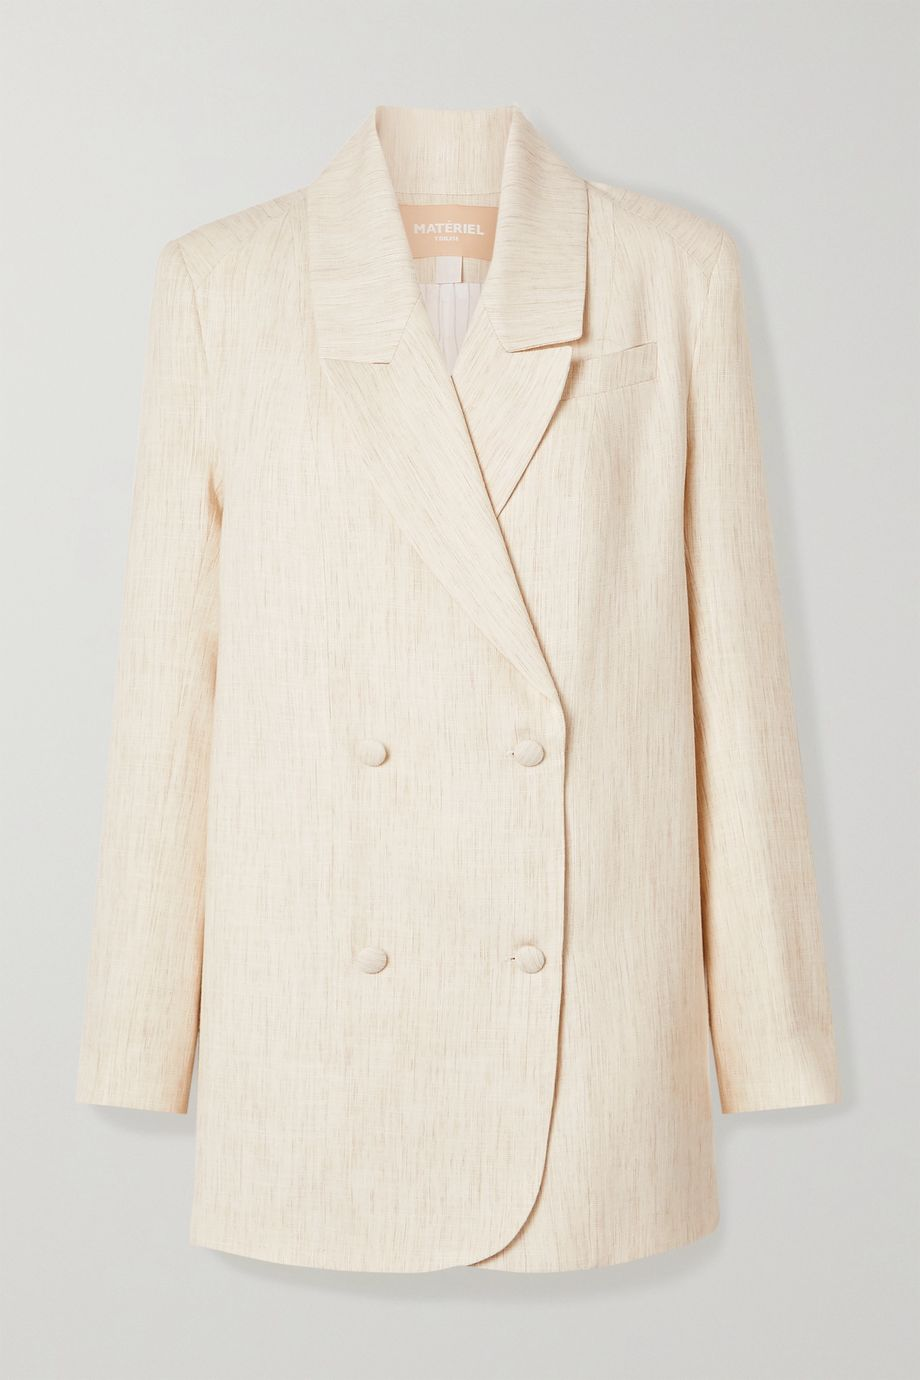 MATERIEL Oversized double-breasted mélange woven blazer